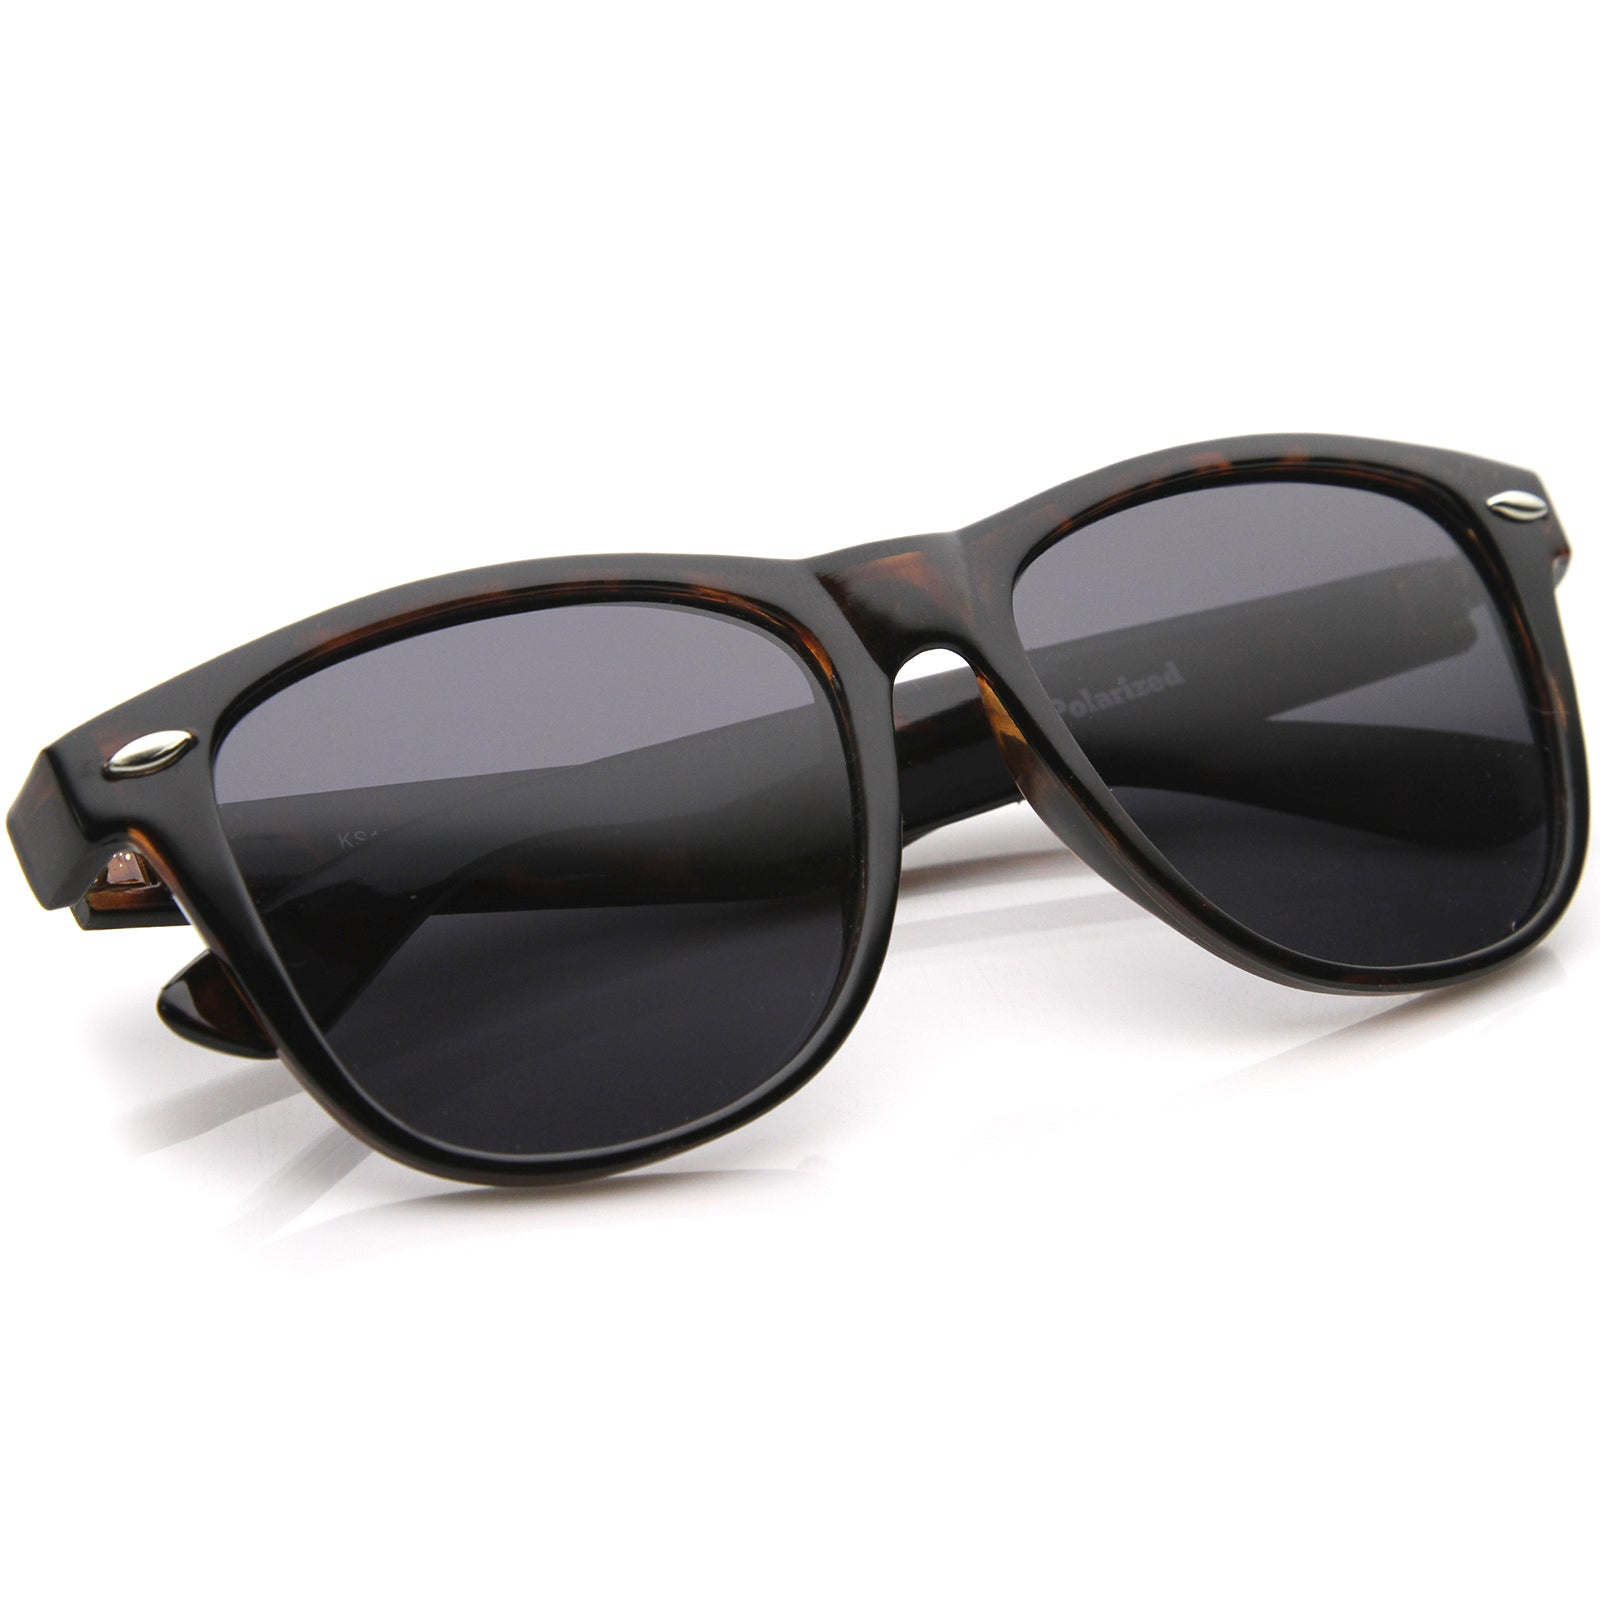 Large Oversize Classic Dark Tinted Lens Horn Rimmed Sunglasses 55mm - sunglass.la - 8